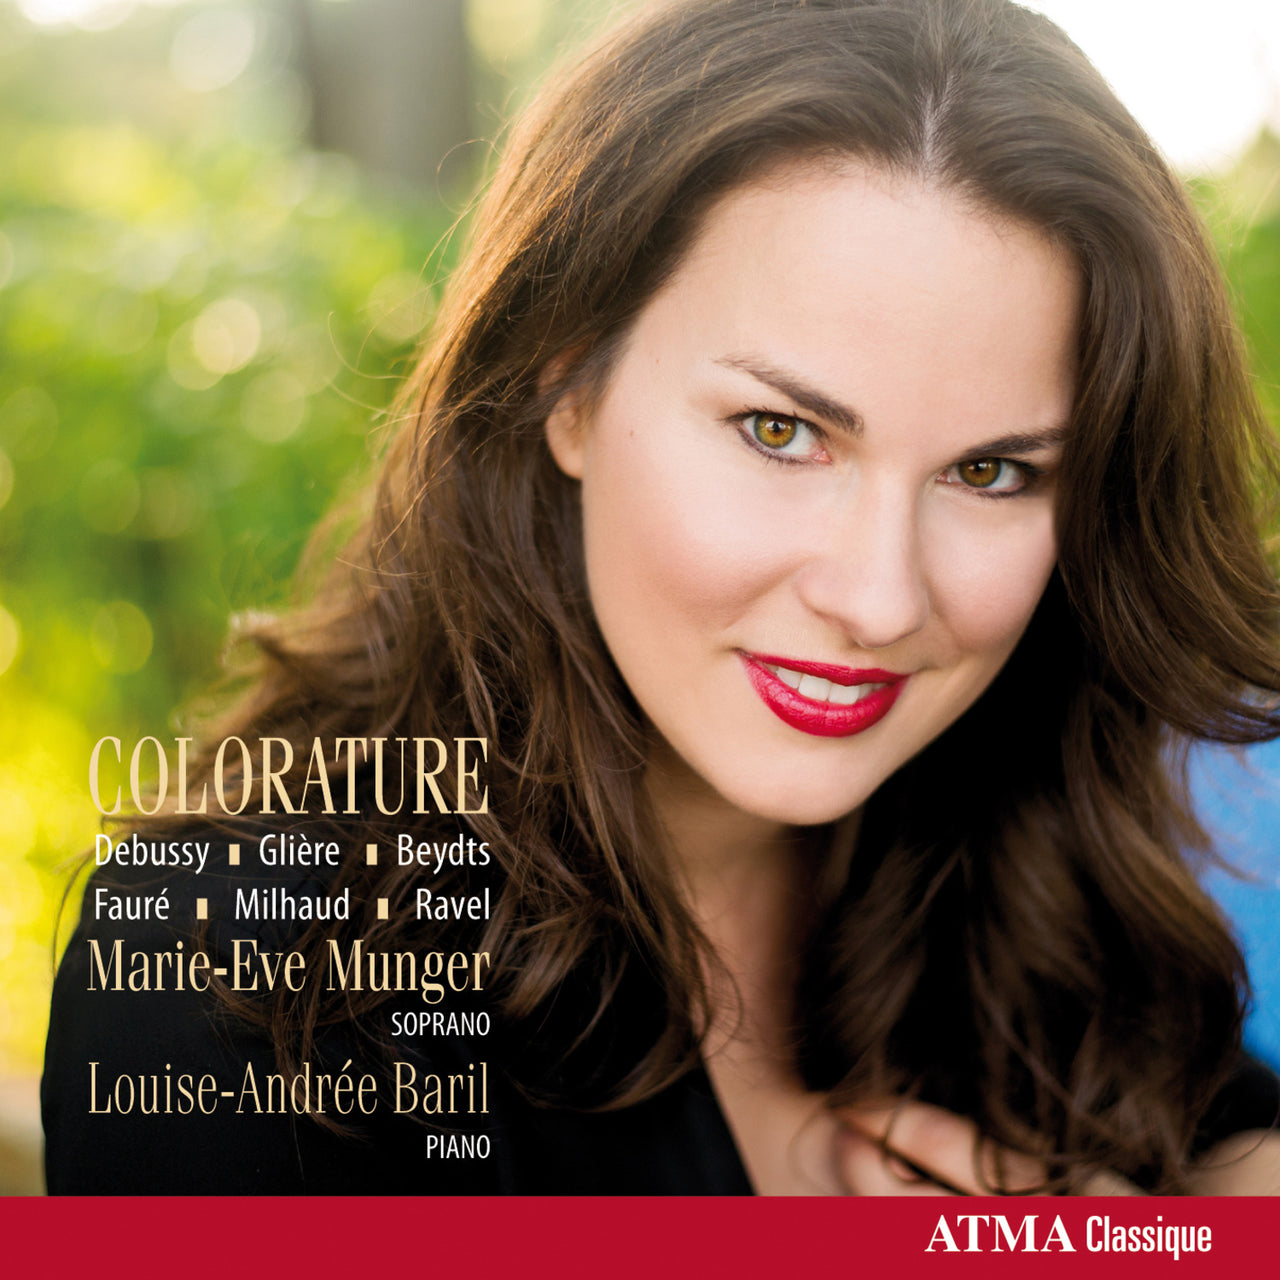 Munger, Marie-Eve : Colorature  CD